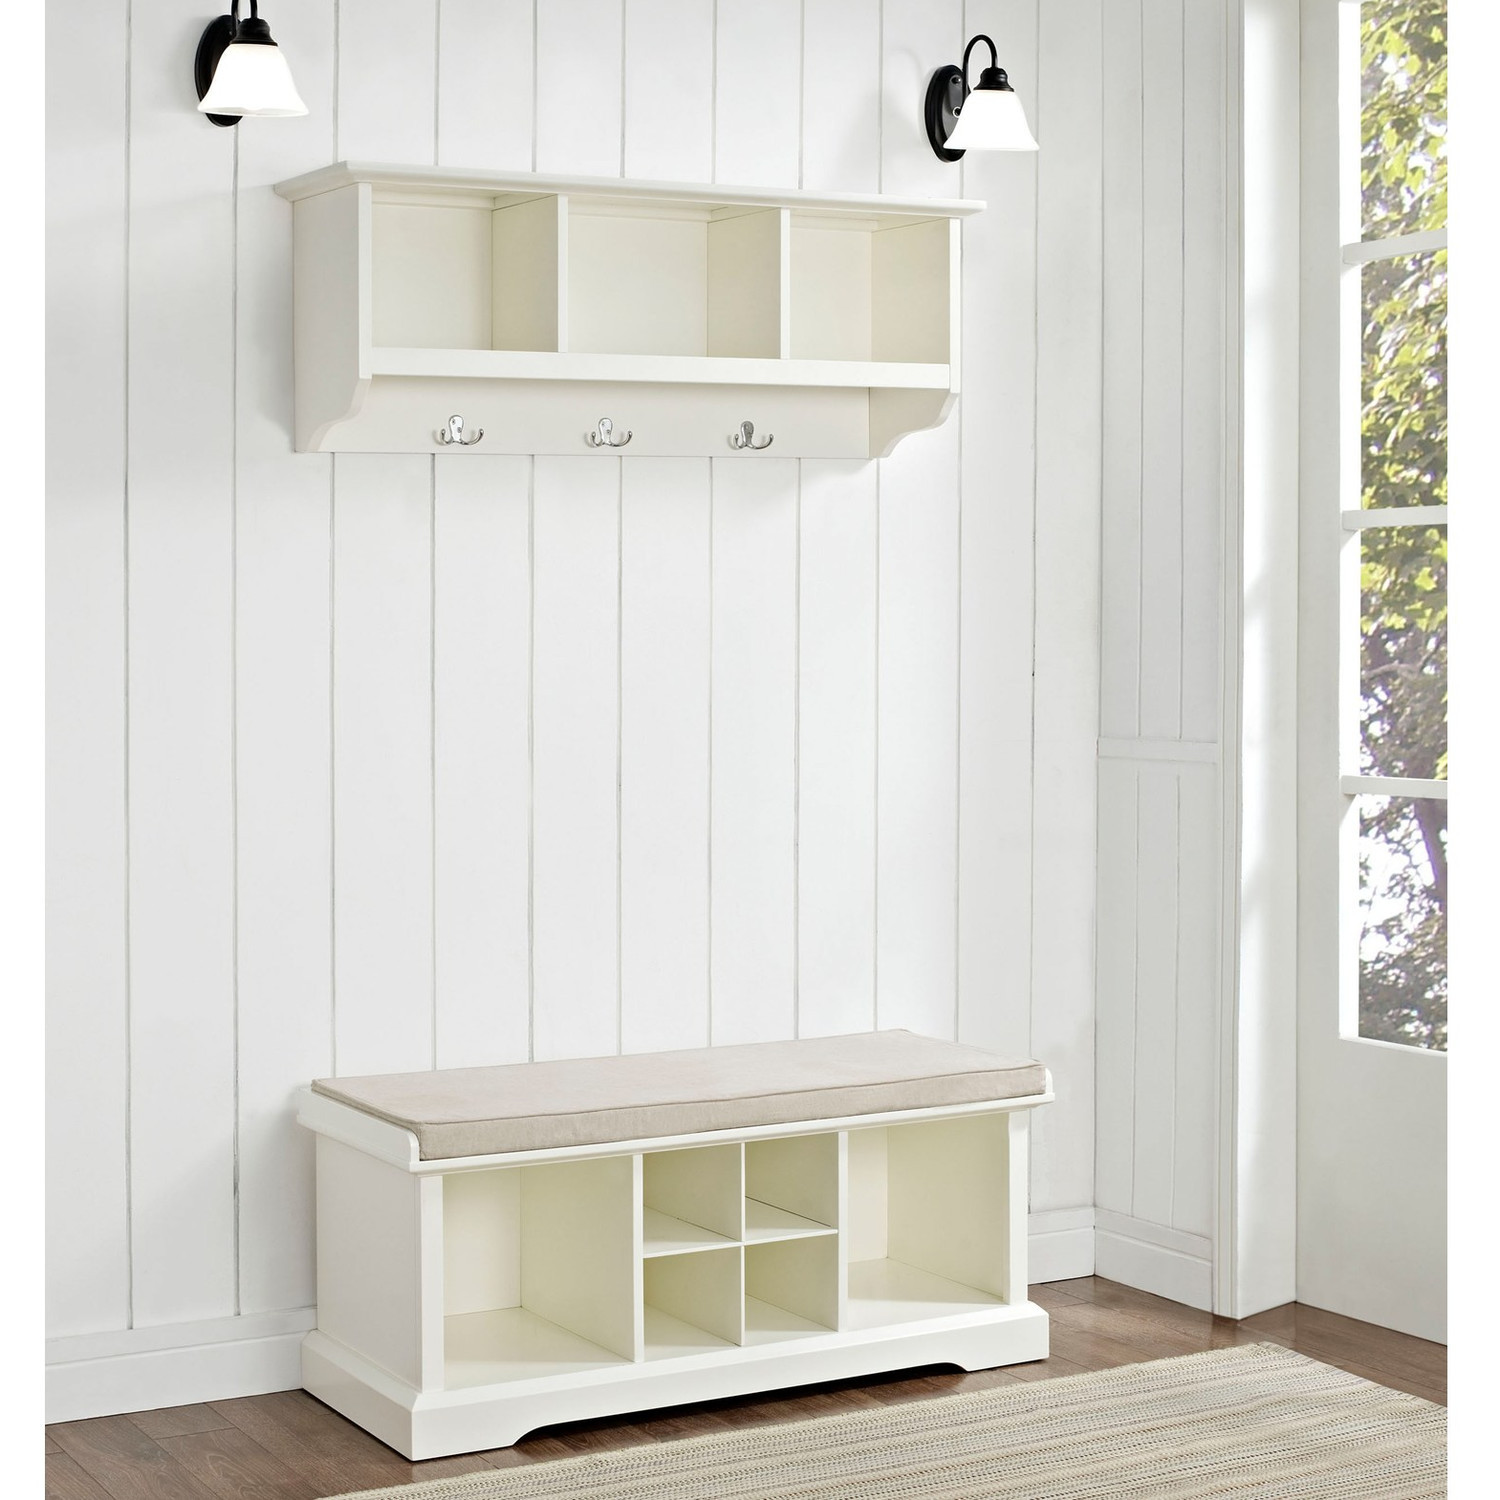 Best ideas about Entryway Bench With Hooks . Save or Pin Entryway Bench With Storage And Hooks Best — STABBEDINBACK Now.